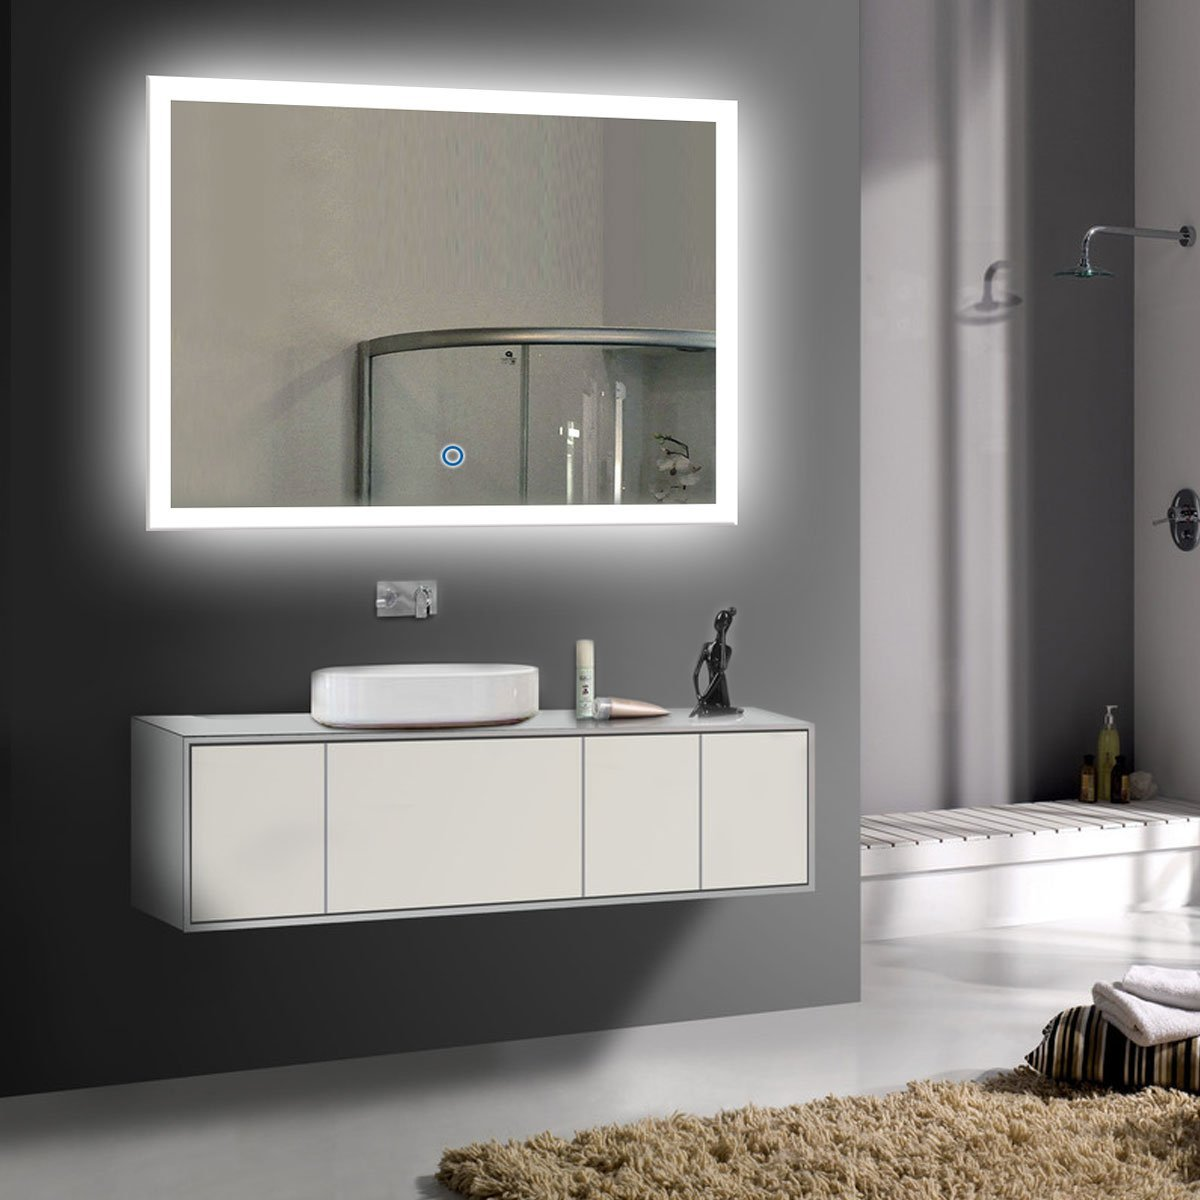 DECORAPORT 36 Inch * 28 Inch Horizontal LED Wall Mounted Lighted Vanity Bathroom Silvered Mirror with Touch Button (A-N031-I)